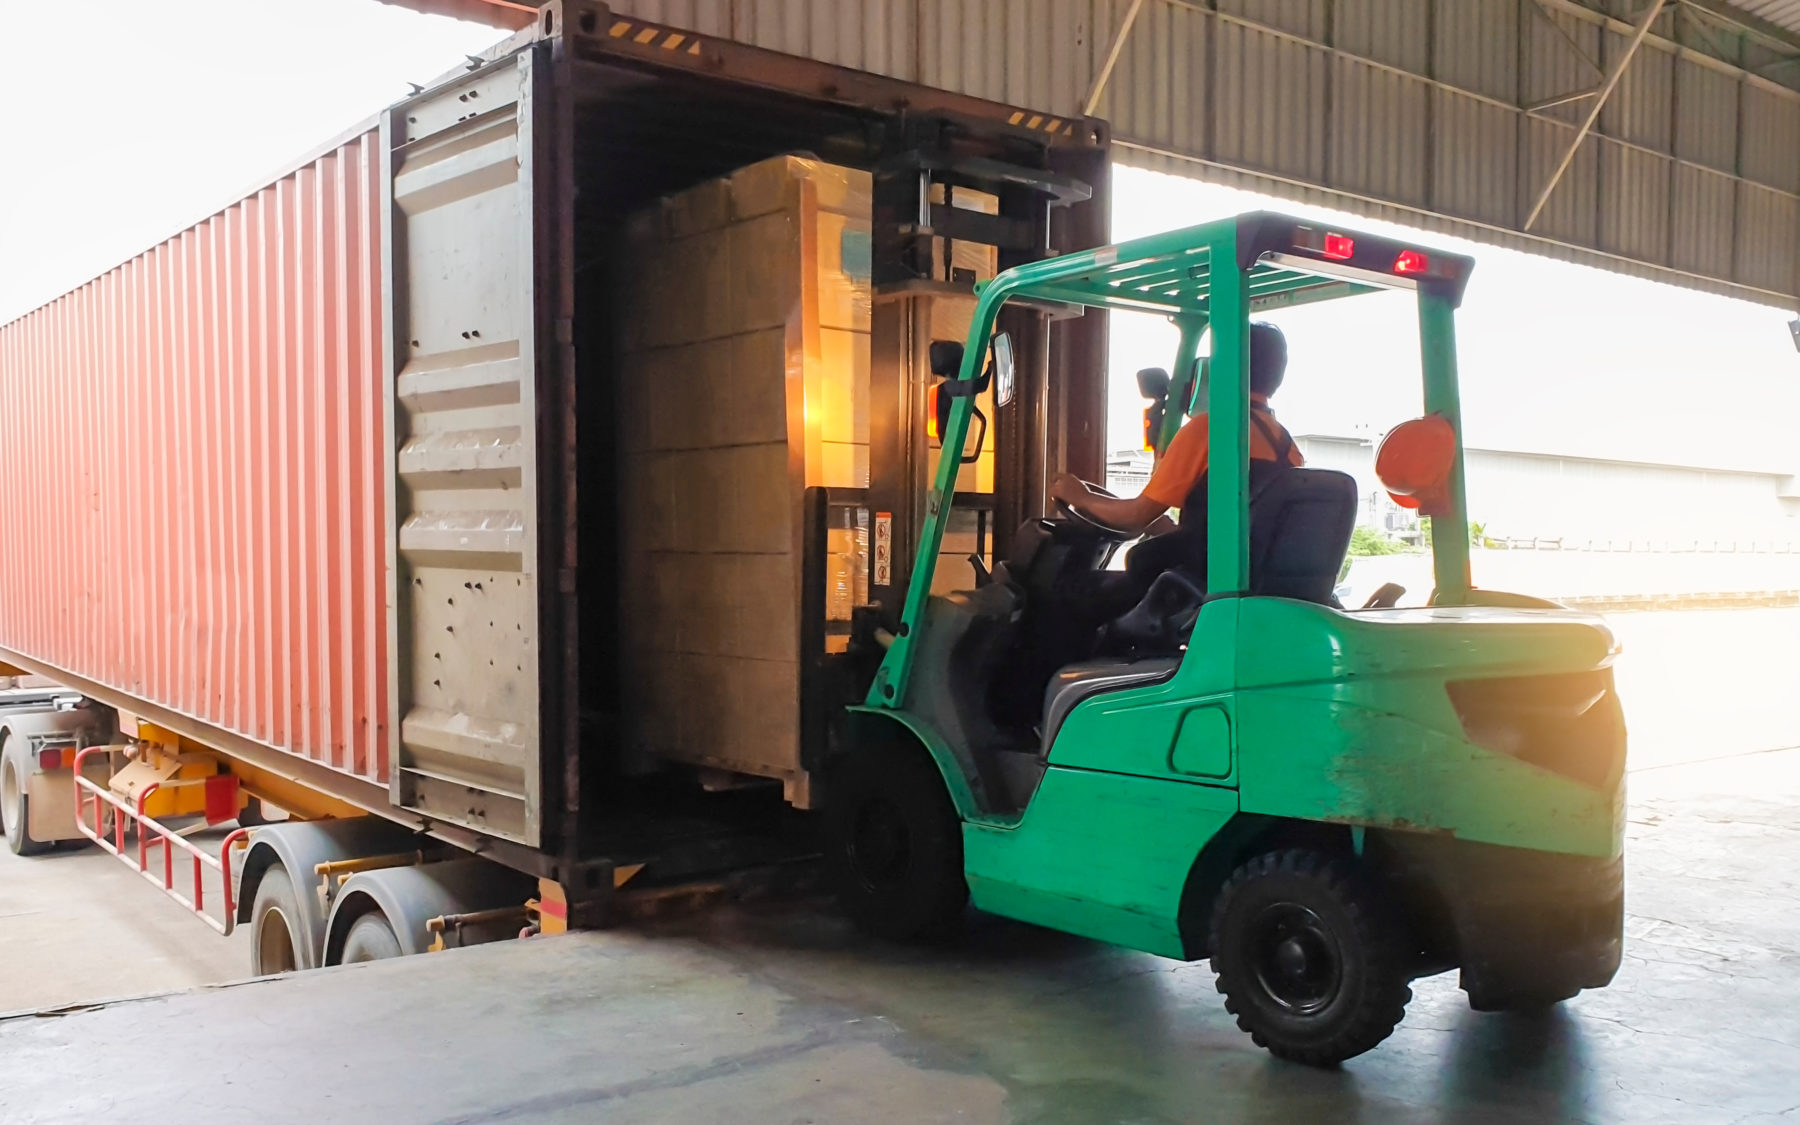 Forklift loading trailer for supply chain efficiency